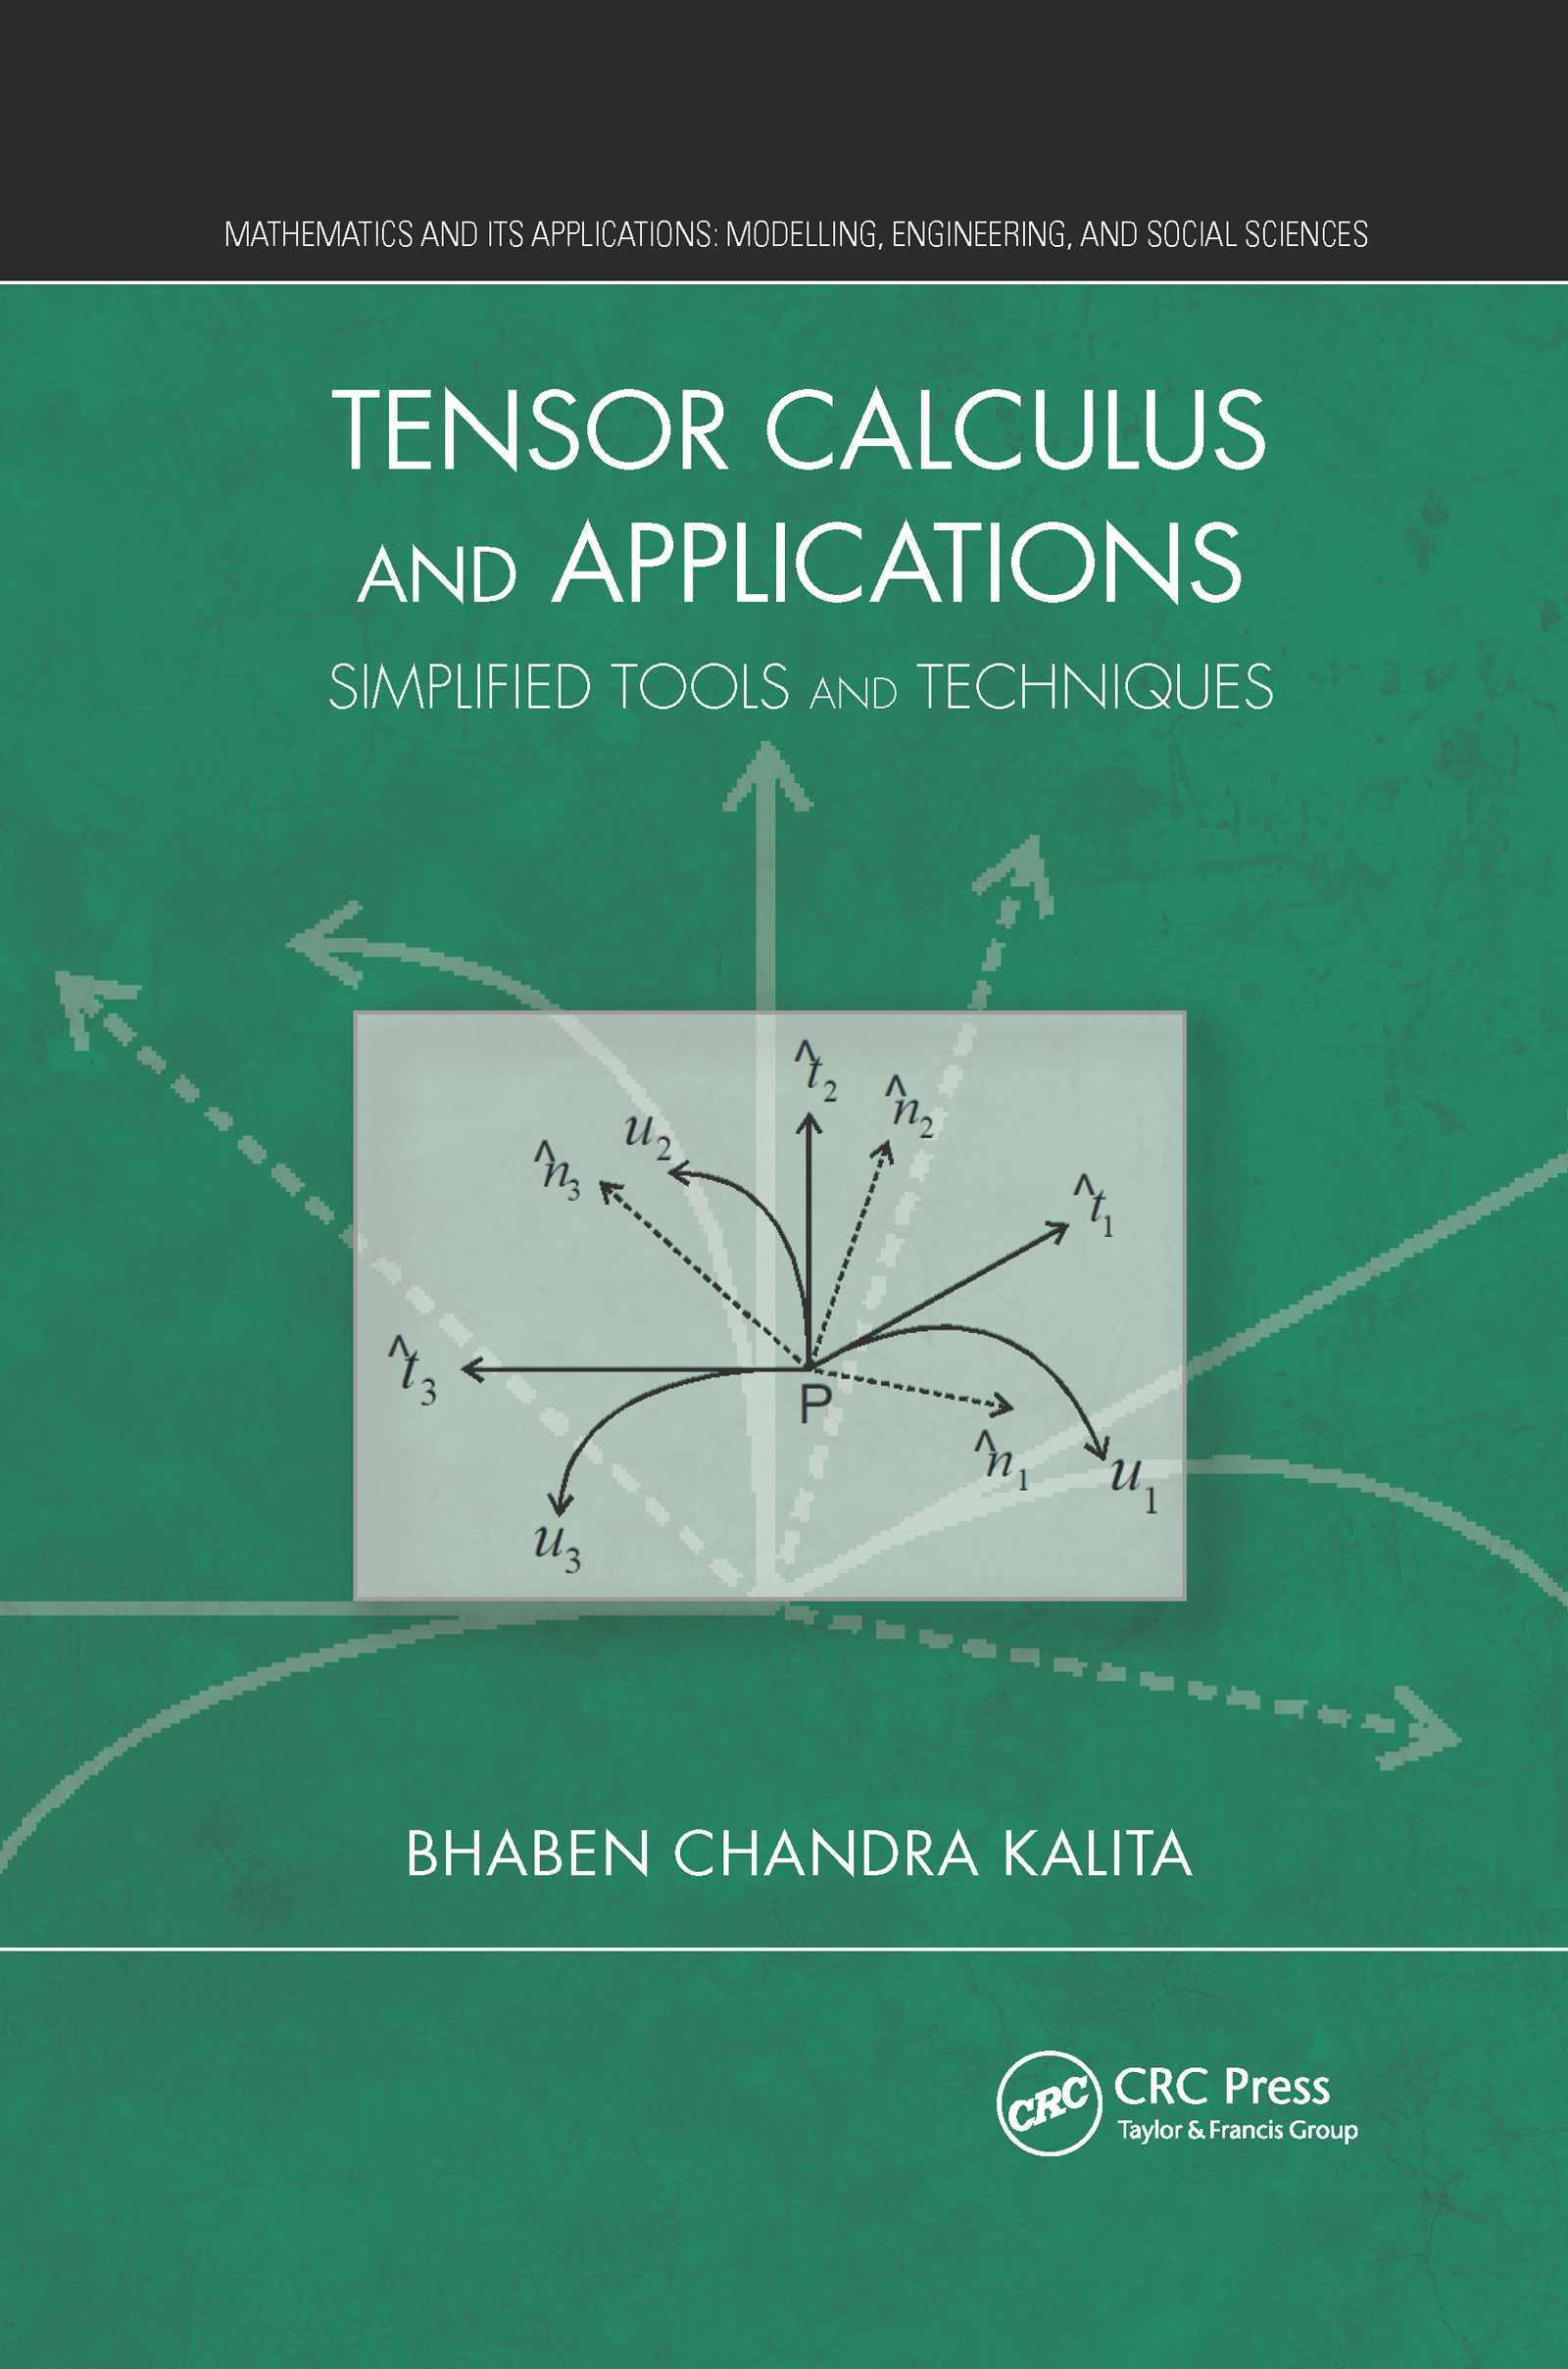 Tensor Calculus and Applications